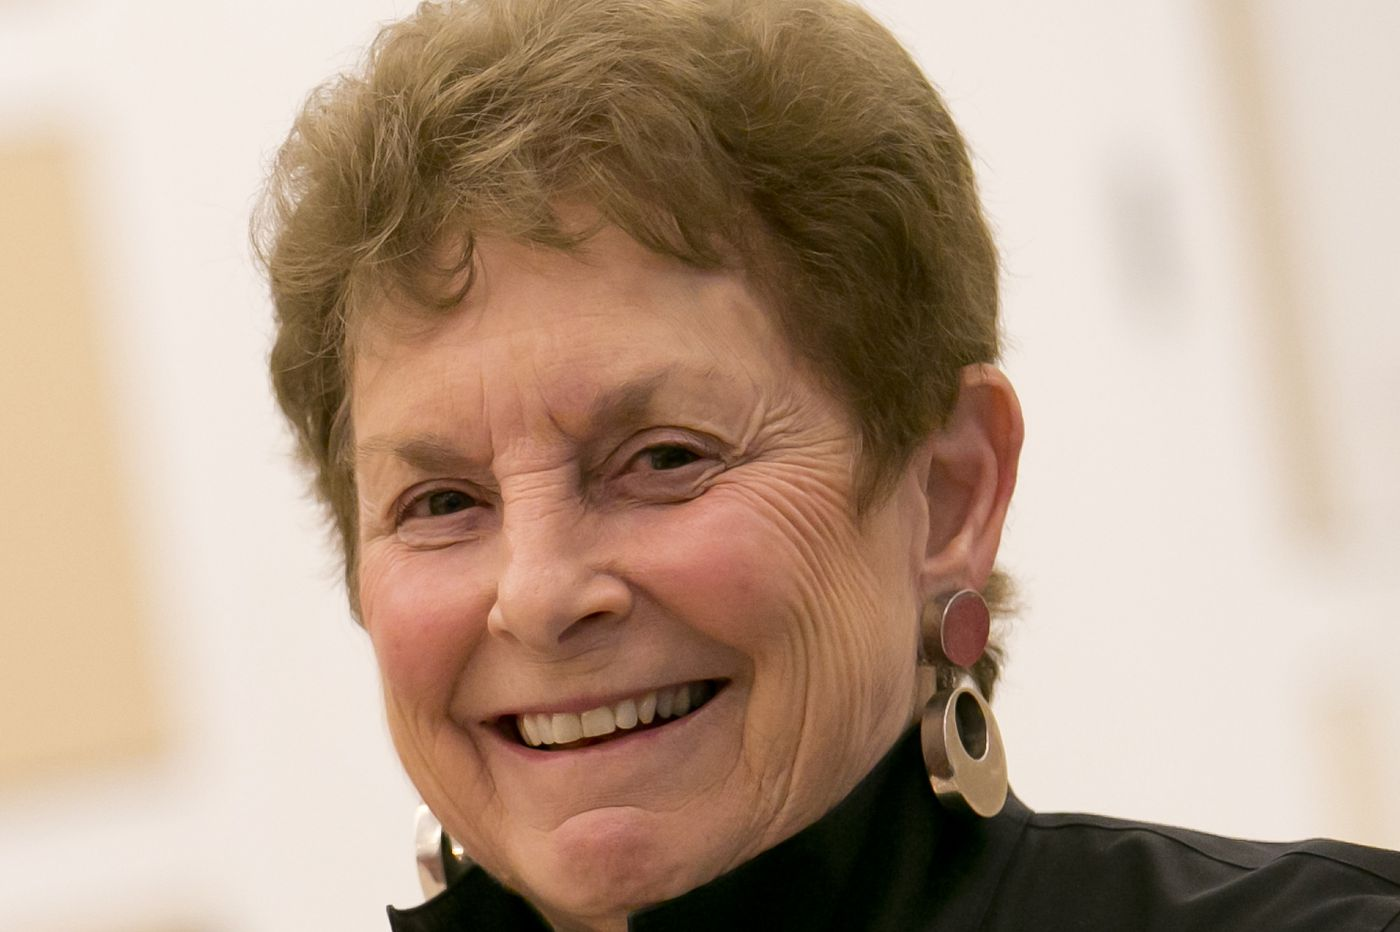 Miriam S. Spector, 76, educator and advocate for Jewish and literacy causes